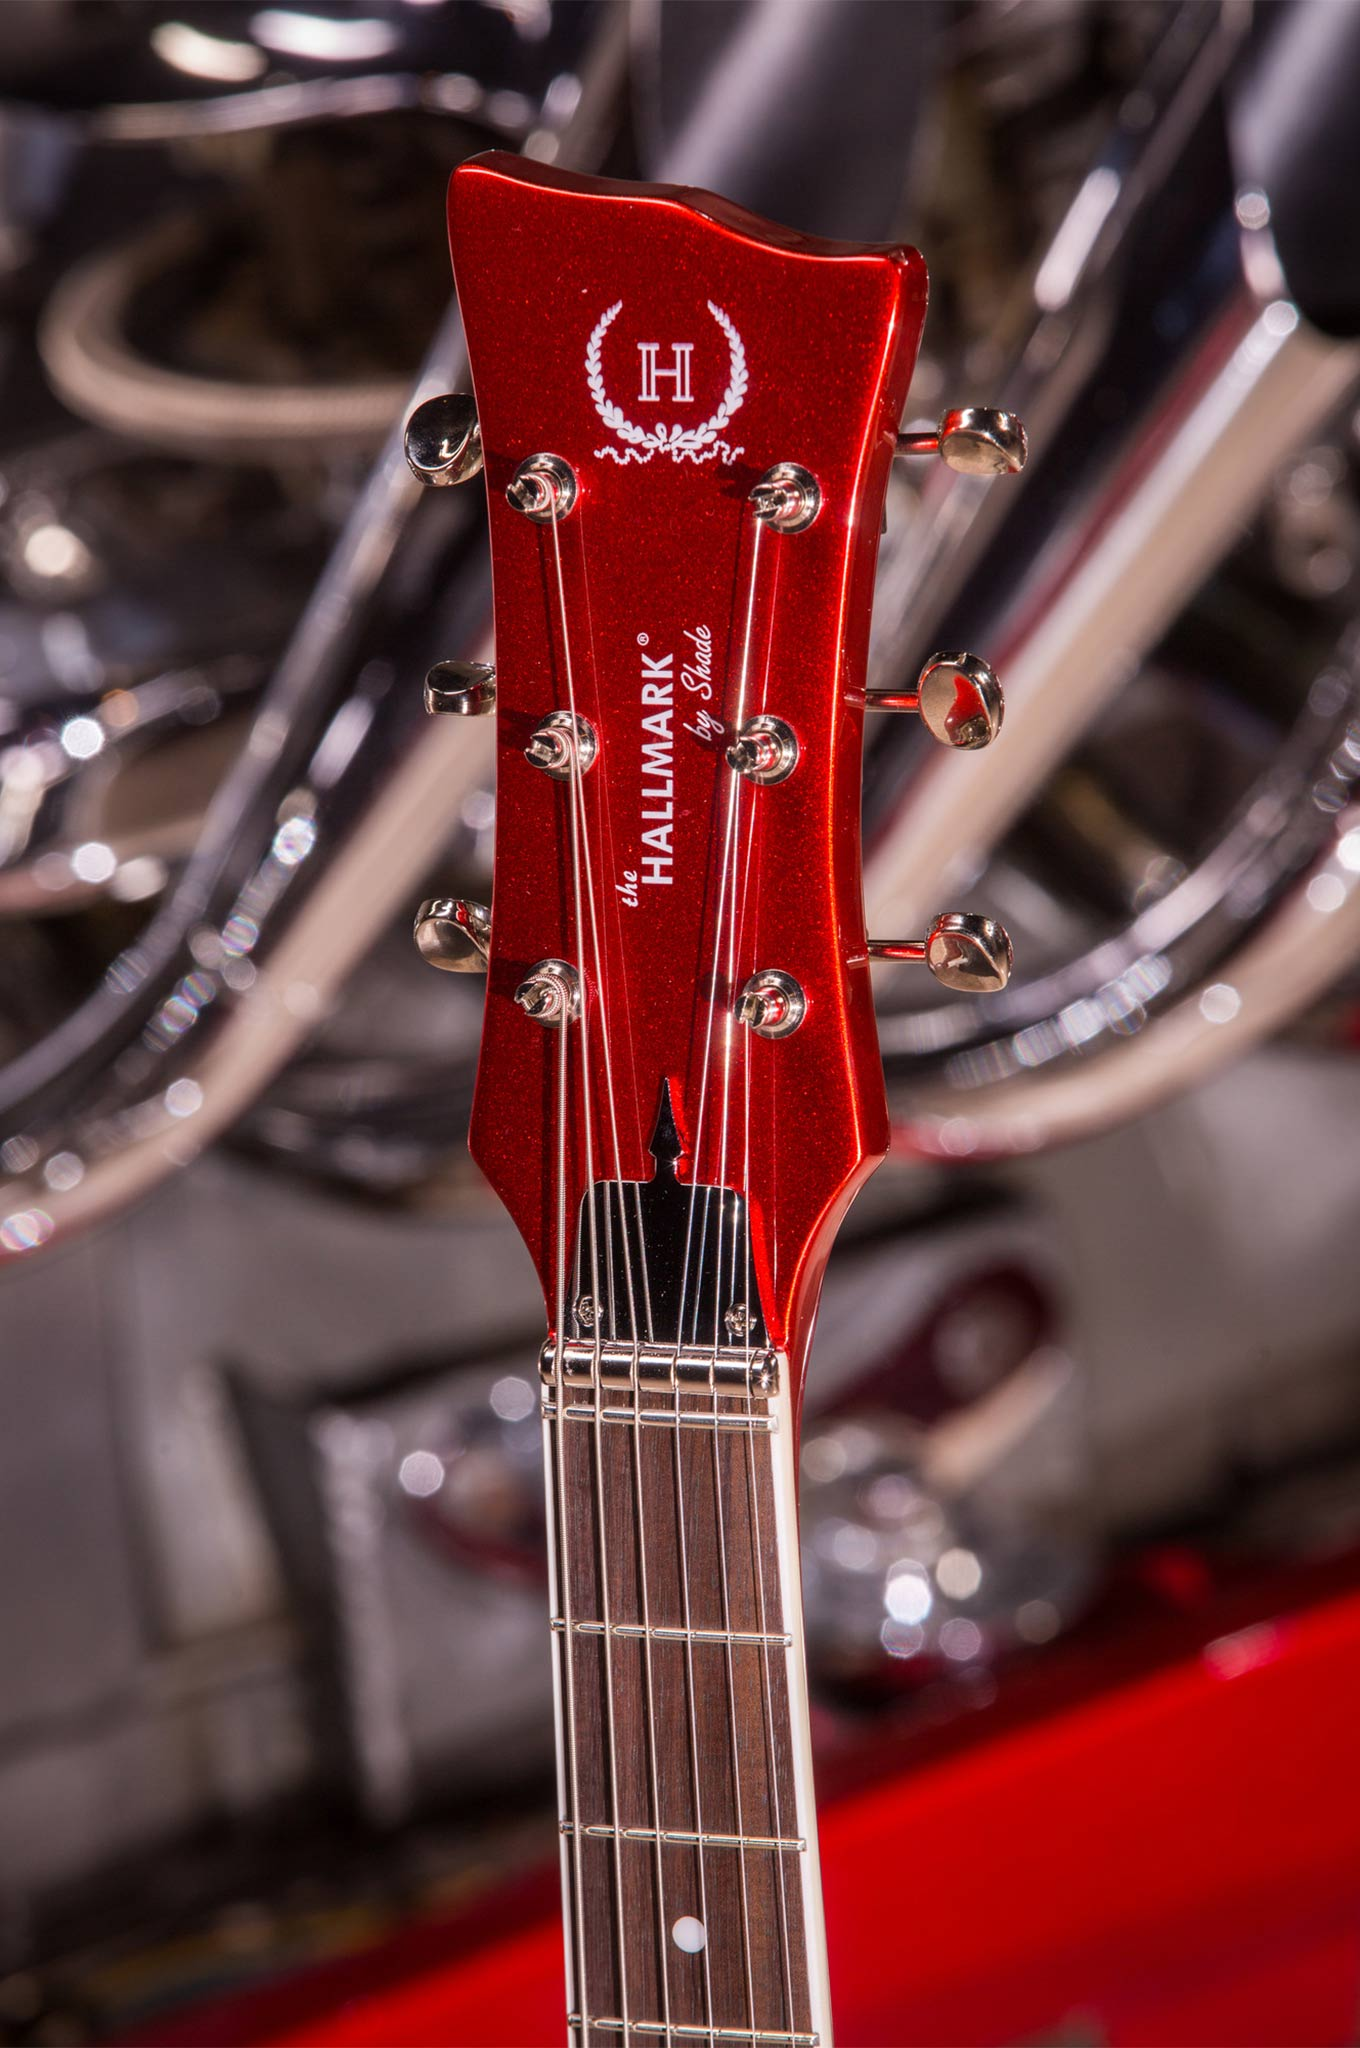 Details that mimic the car are all over the guitar. See the helmet spike?